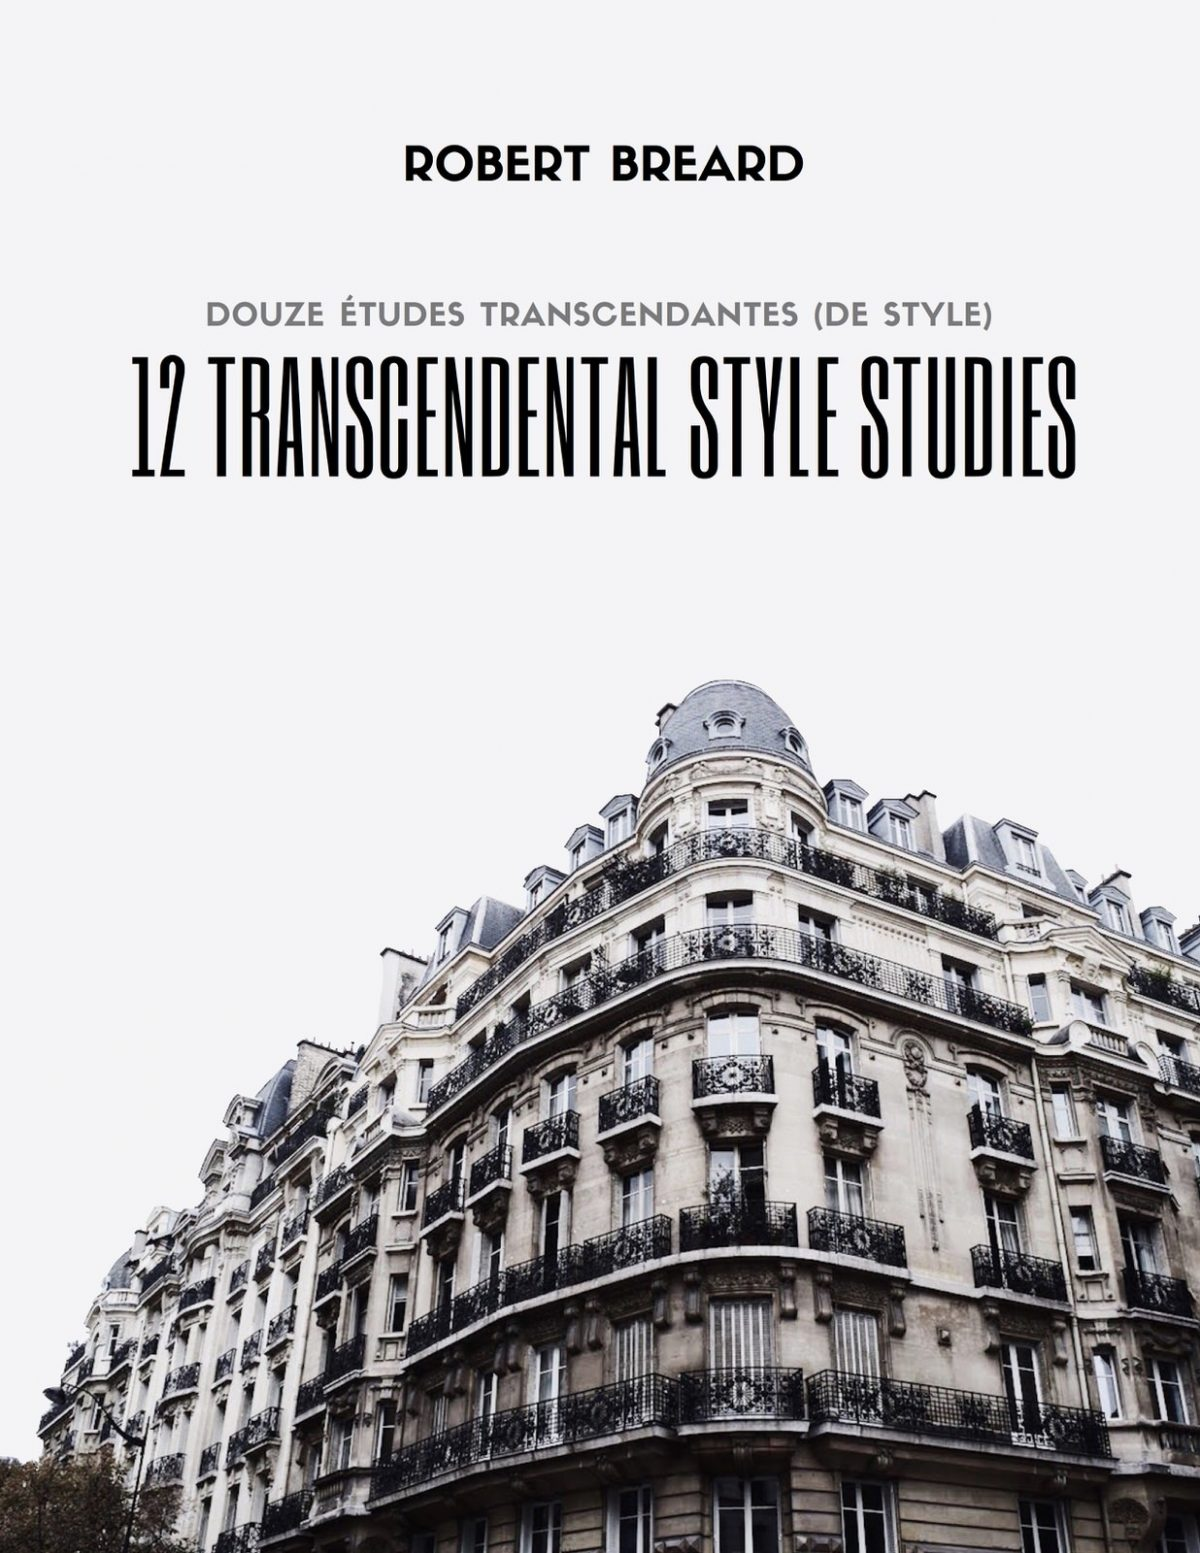 Breard, 12 Transcendental Style Studies for Trombone-p01